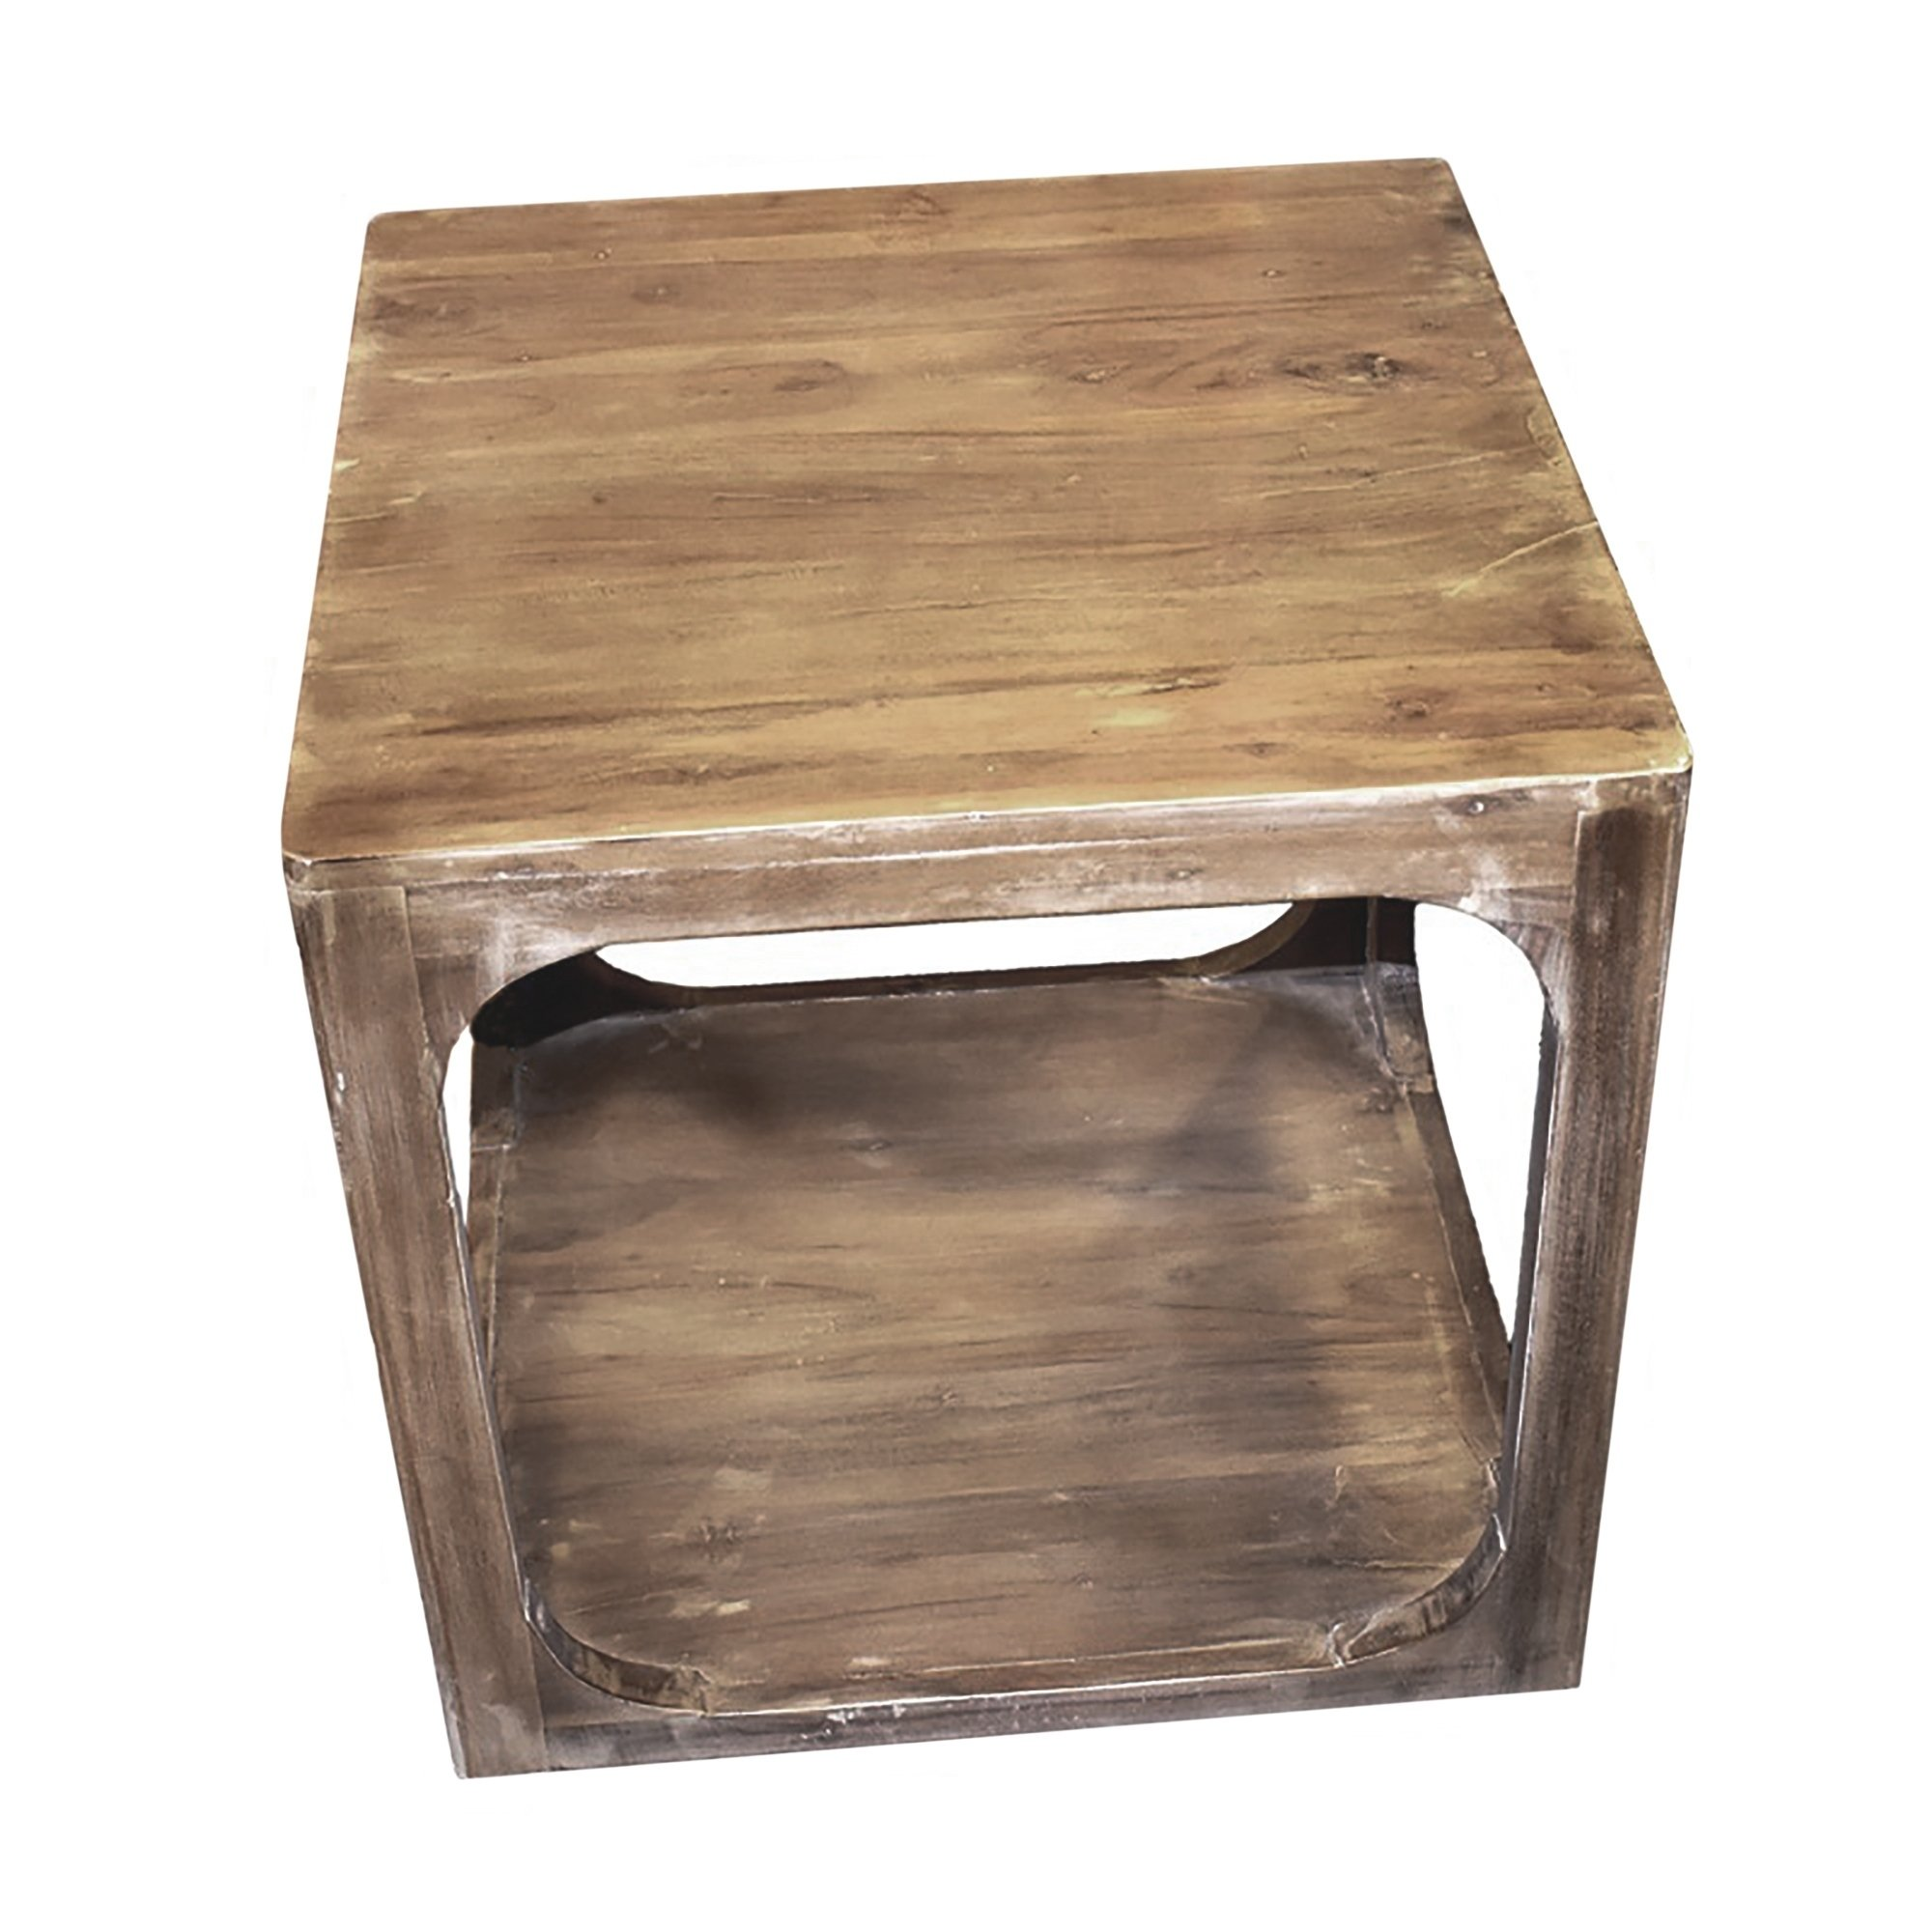 urban designs alton brown natural wood accent side table night free shipping today with storage baskets west elm coffee desk kitchen chairs tall bistro made clear console tile